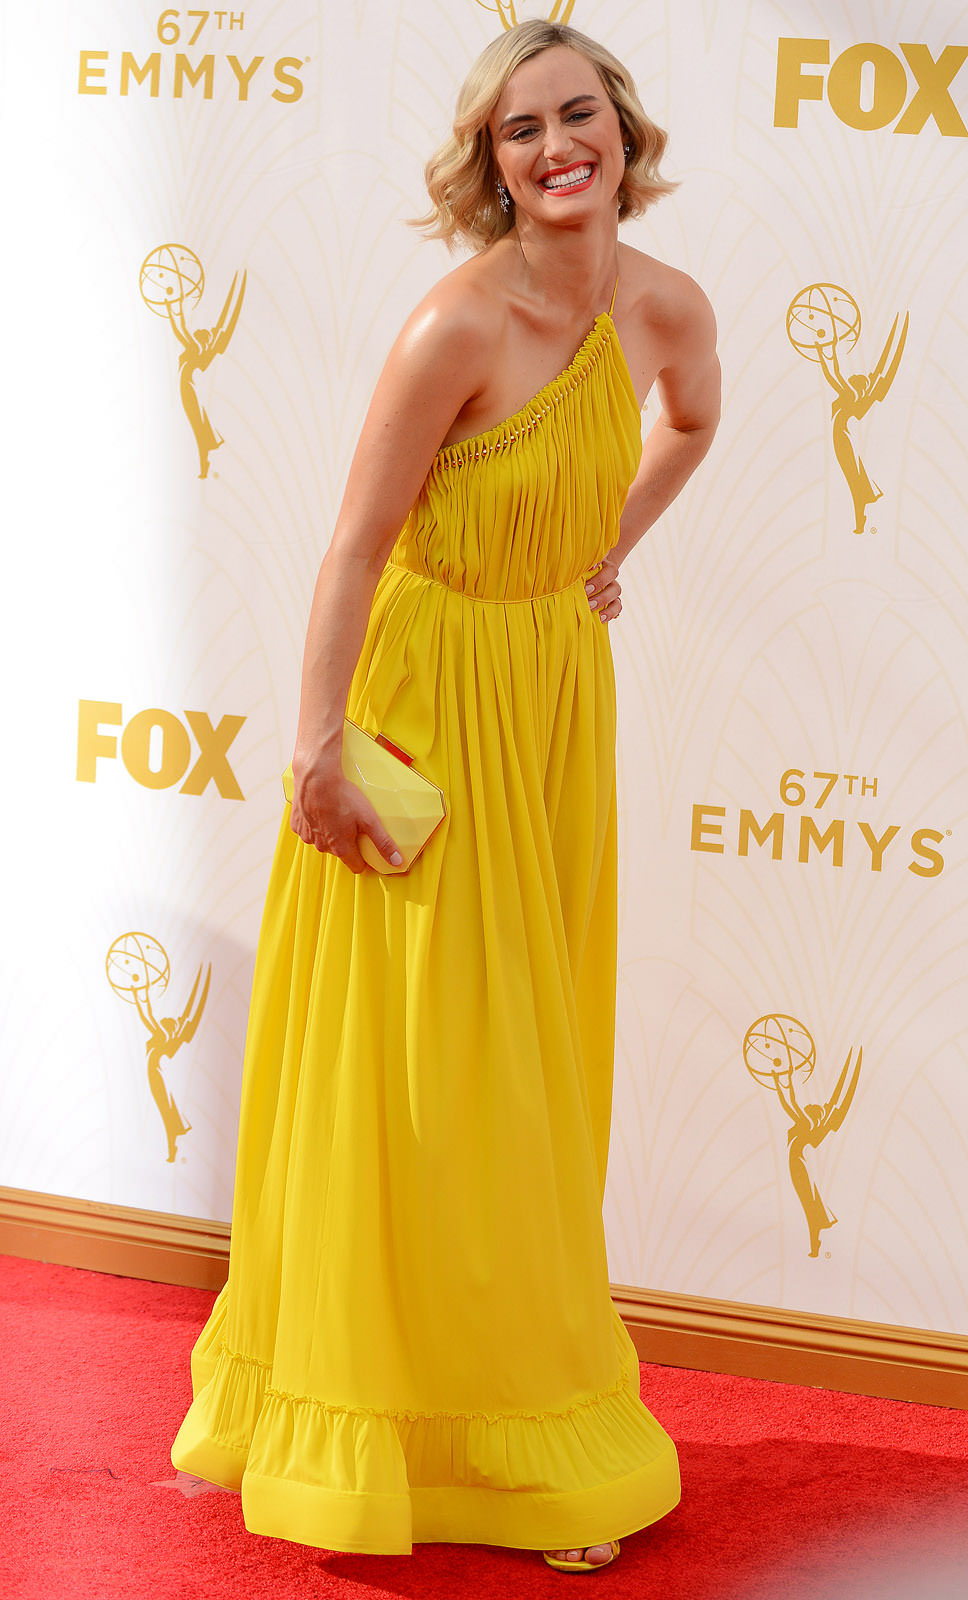 Taylor Schilling Photo Gallery